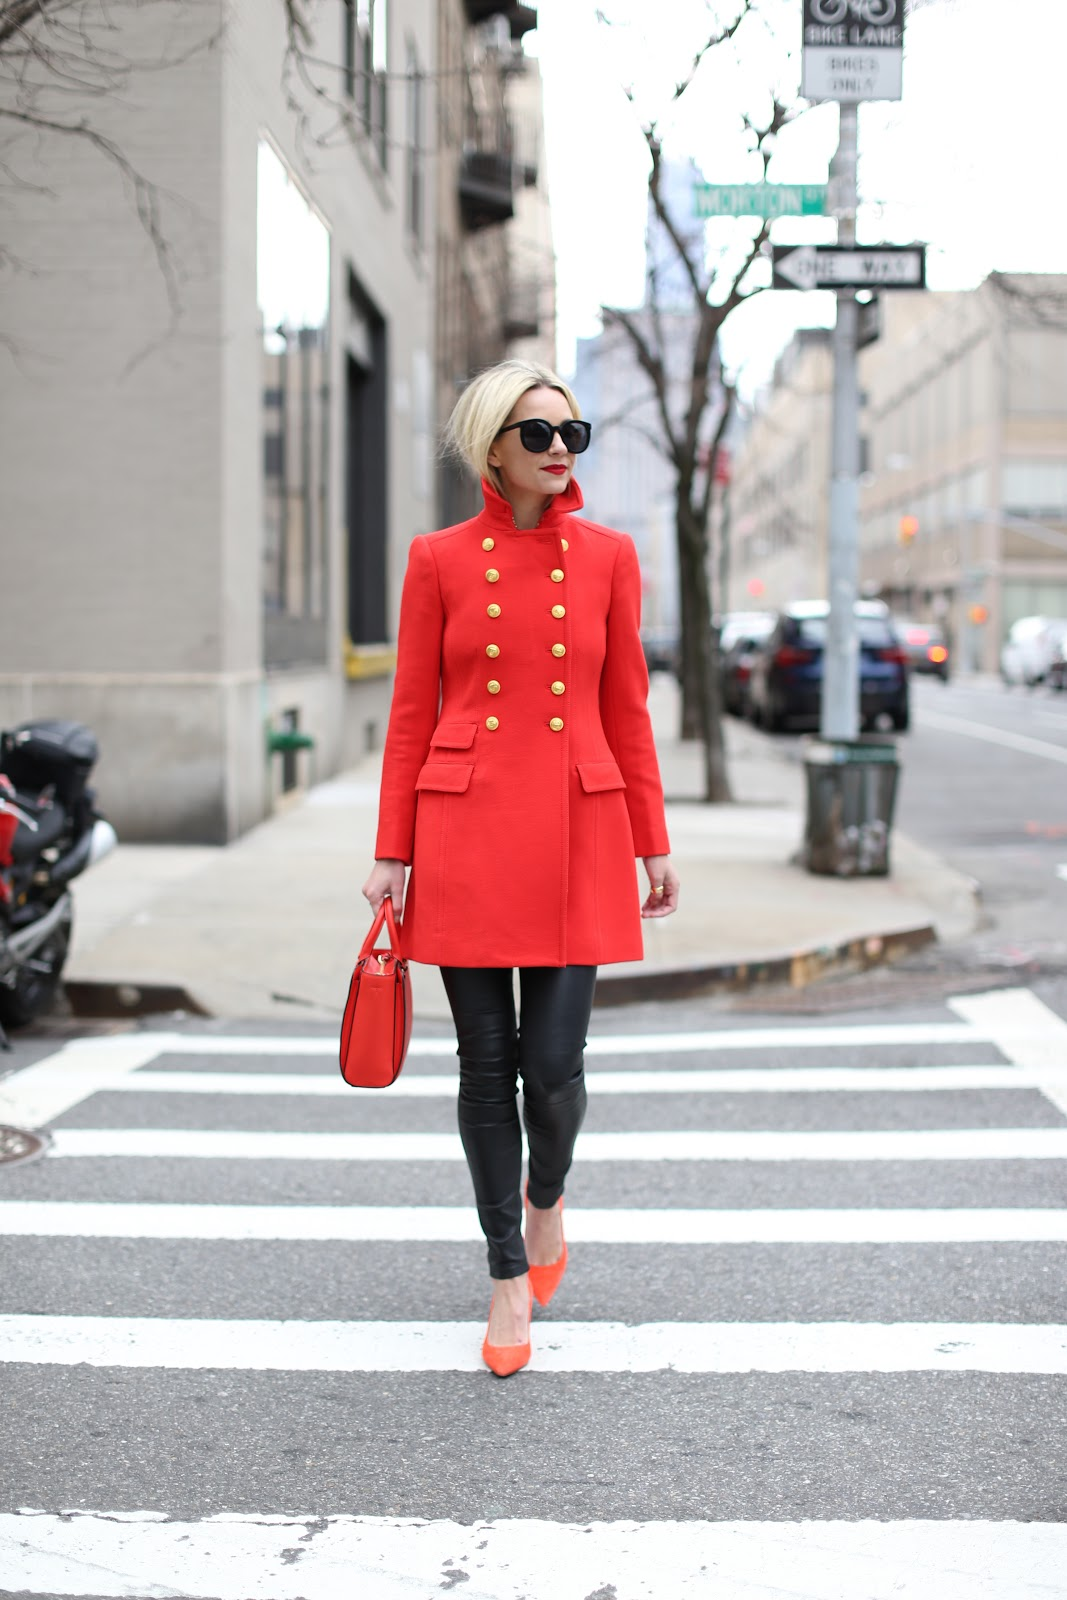 Red Hot Military Coat - Image via Just the Design